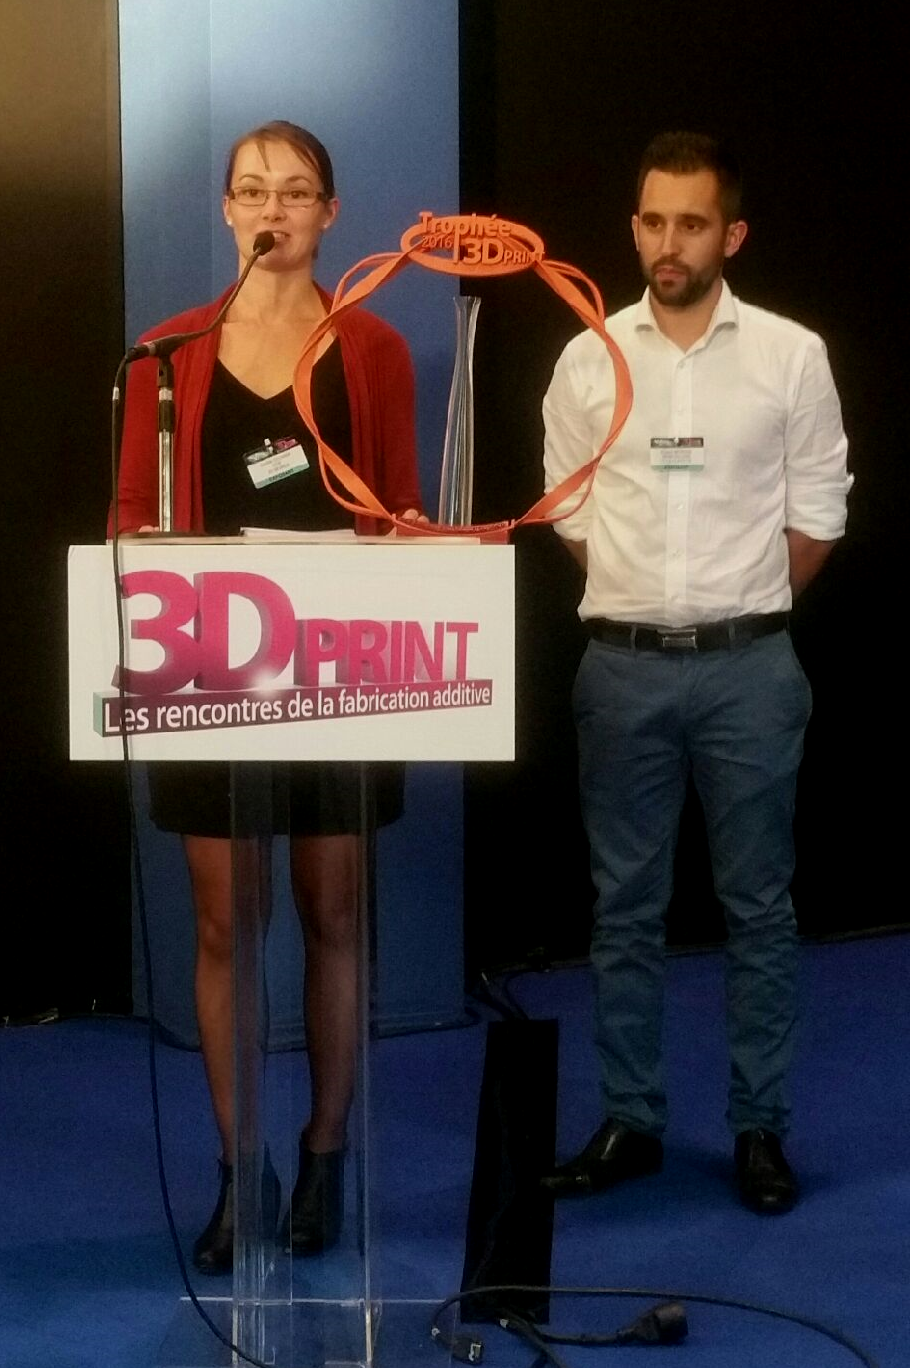 metalnews-ctif-remporte-le-trophee-3d-print-2016-salon-de-la-fabrication-additive